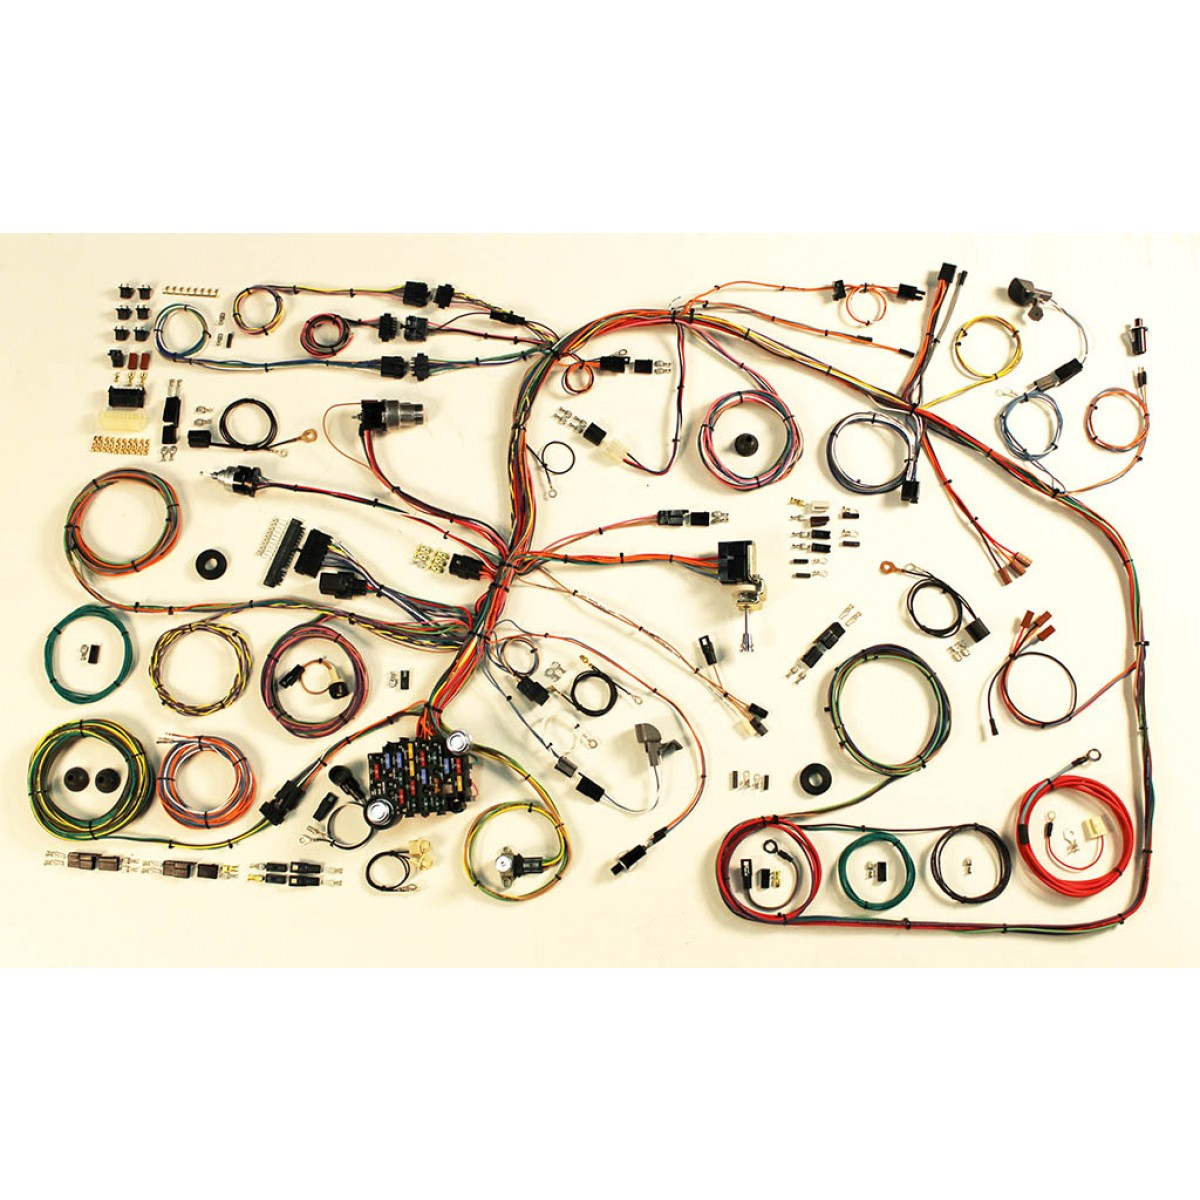 hight resolution of 1972 ford f100 wiring harness wiring diagram options 1967 1972 ford f100 complete wiring harness kit